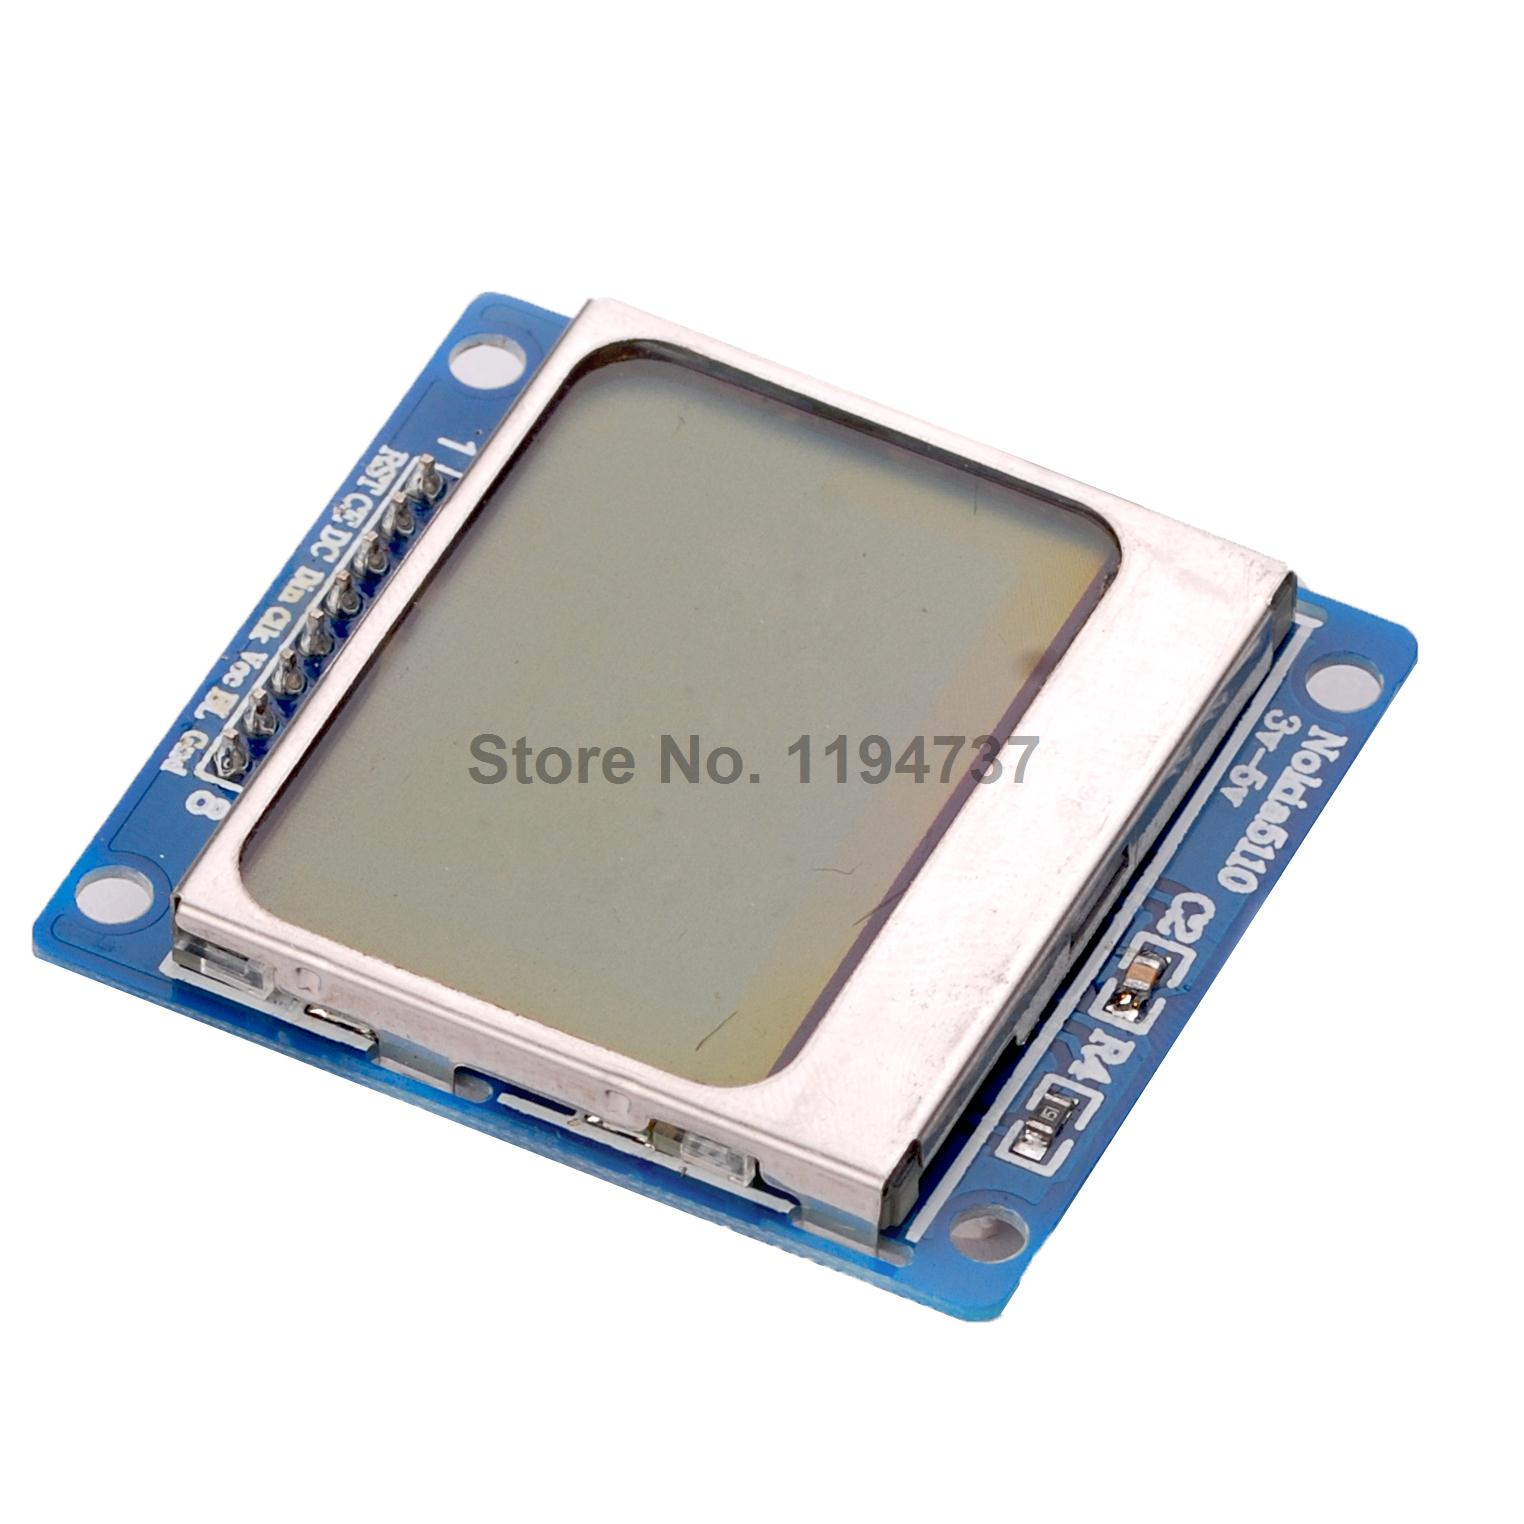 Nokia 5110 lcd module monochrome display screen 84 x 48 for arduino - 1pcs Blue 84x48 Nokia 5110 Lcd Module With Blue Backlight With Adapter Pcb For Arduino